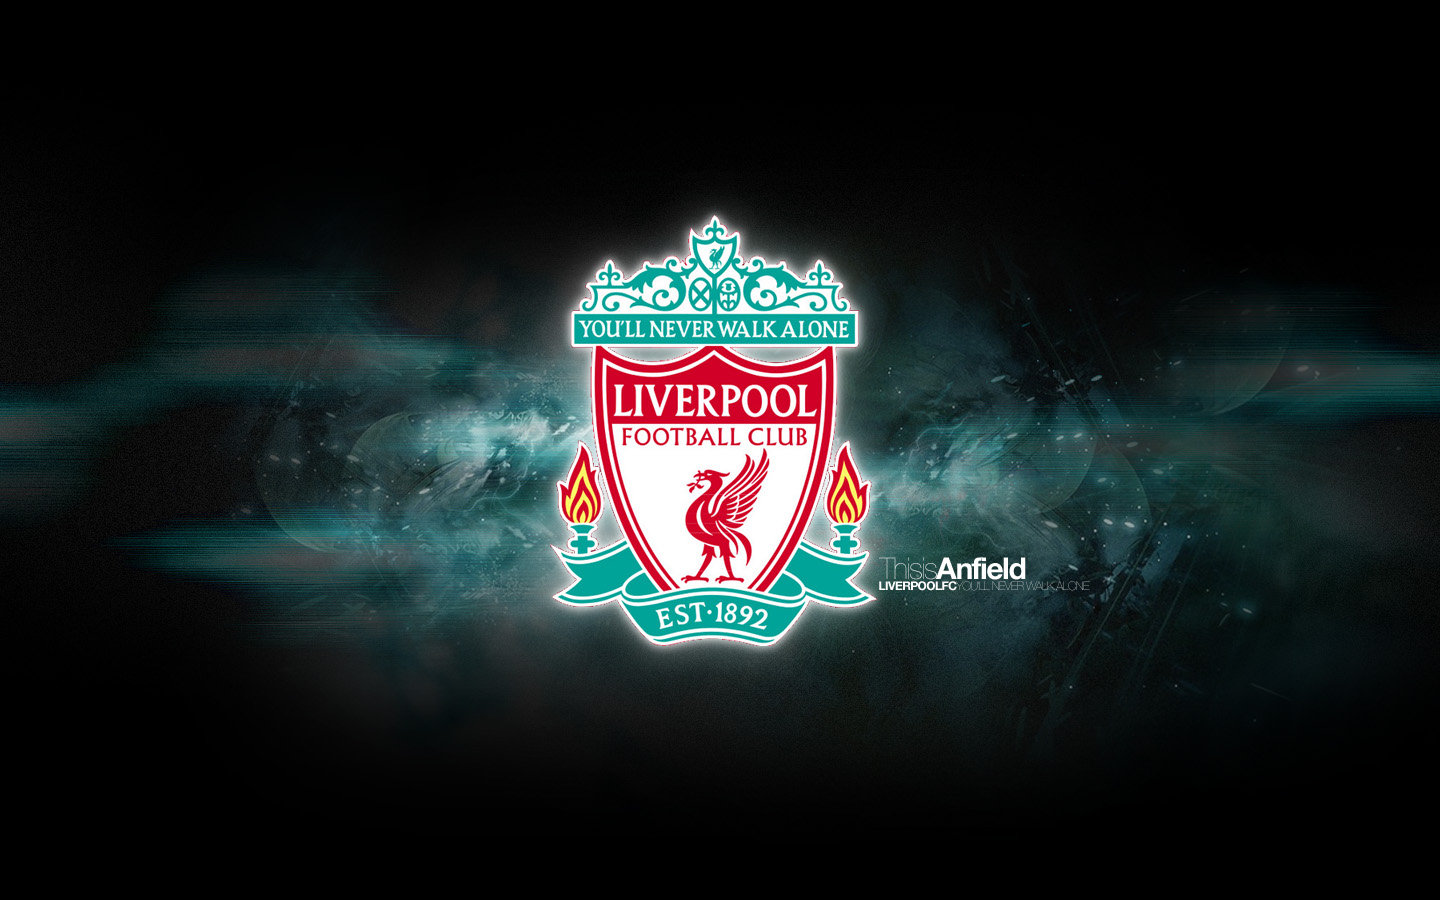 liverpool wallpapers hd a8 - hd desktop wallpapers | 4k hd